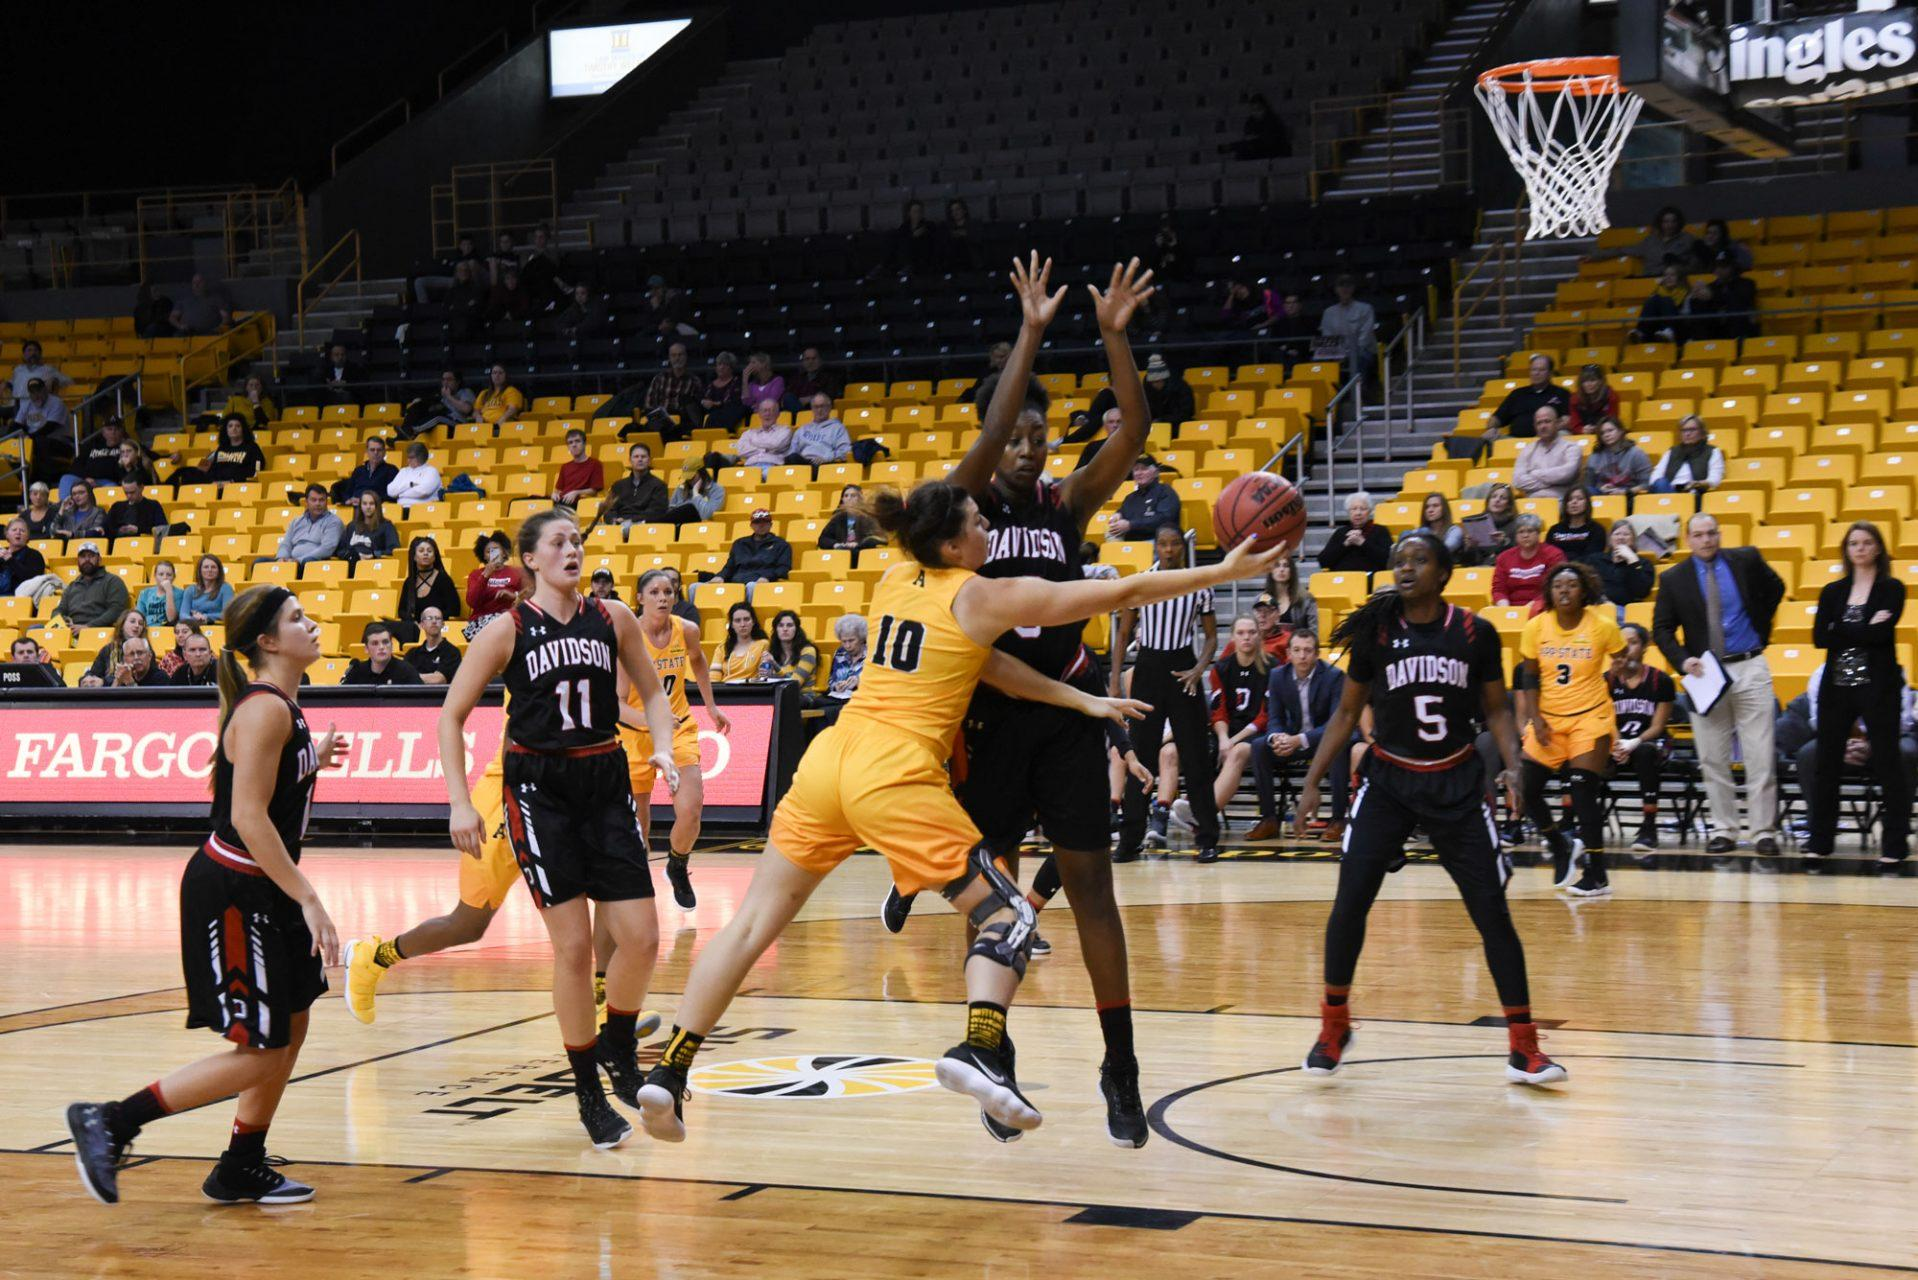 Sophomore guard Kaila Craven attempts to score a basket during the home game on Sunday afternoon.